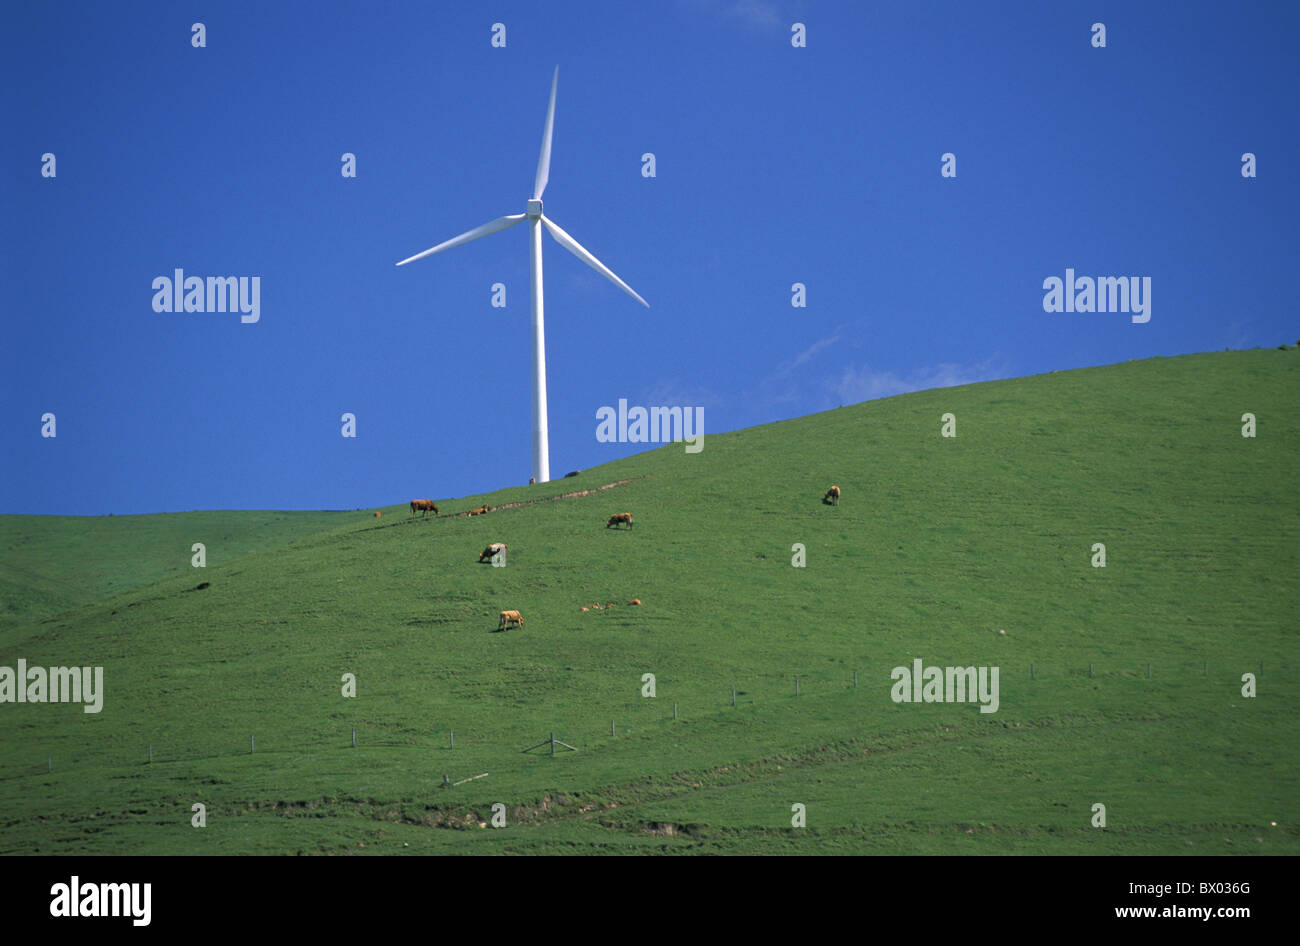 Australia Toora Victoria Windmill wind electricity energy hill industry cattle powerplant propeller airs - Stock Image